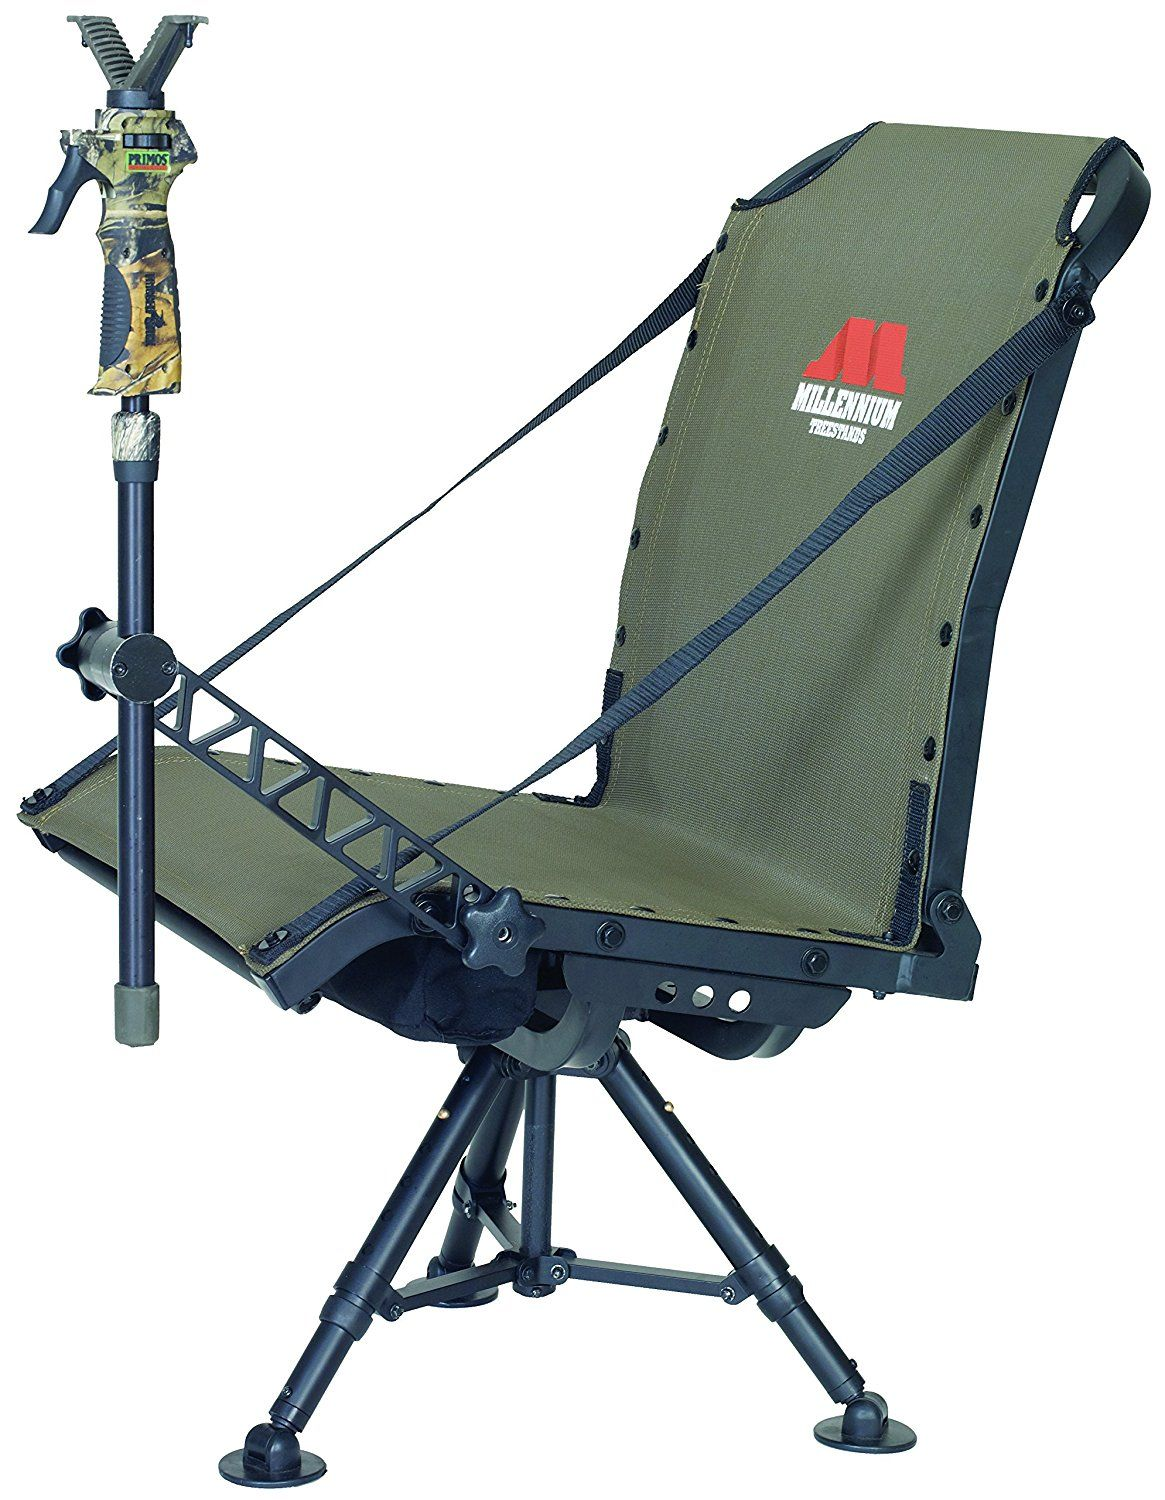 Amazon Com Millennium Treestands G100 Blind Chair Sports Outdoors Hunting Blinds Hunting Chair Deer Hunting Gear